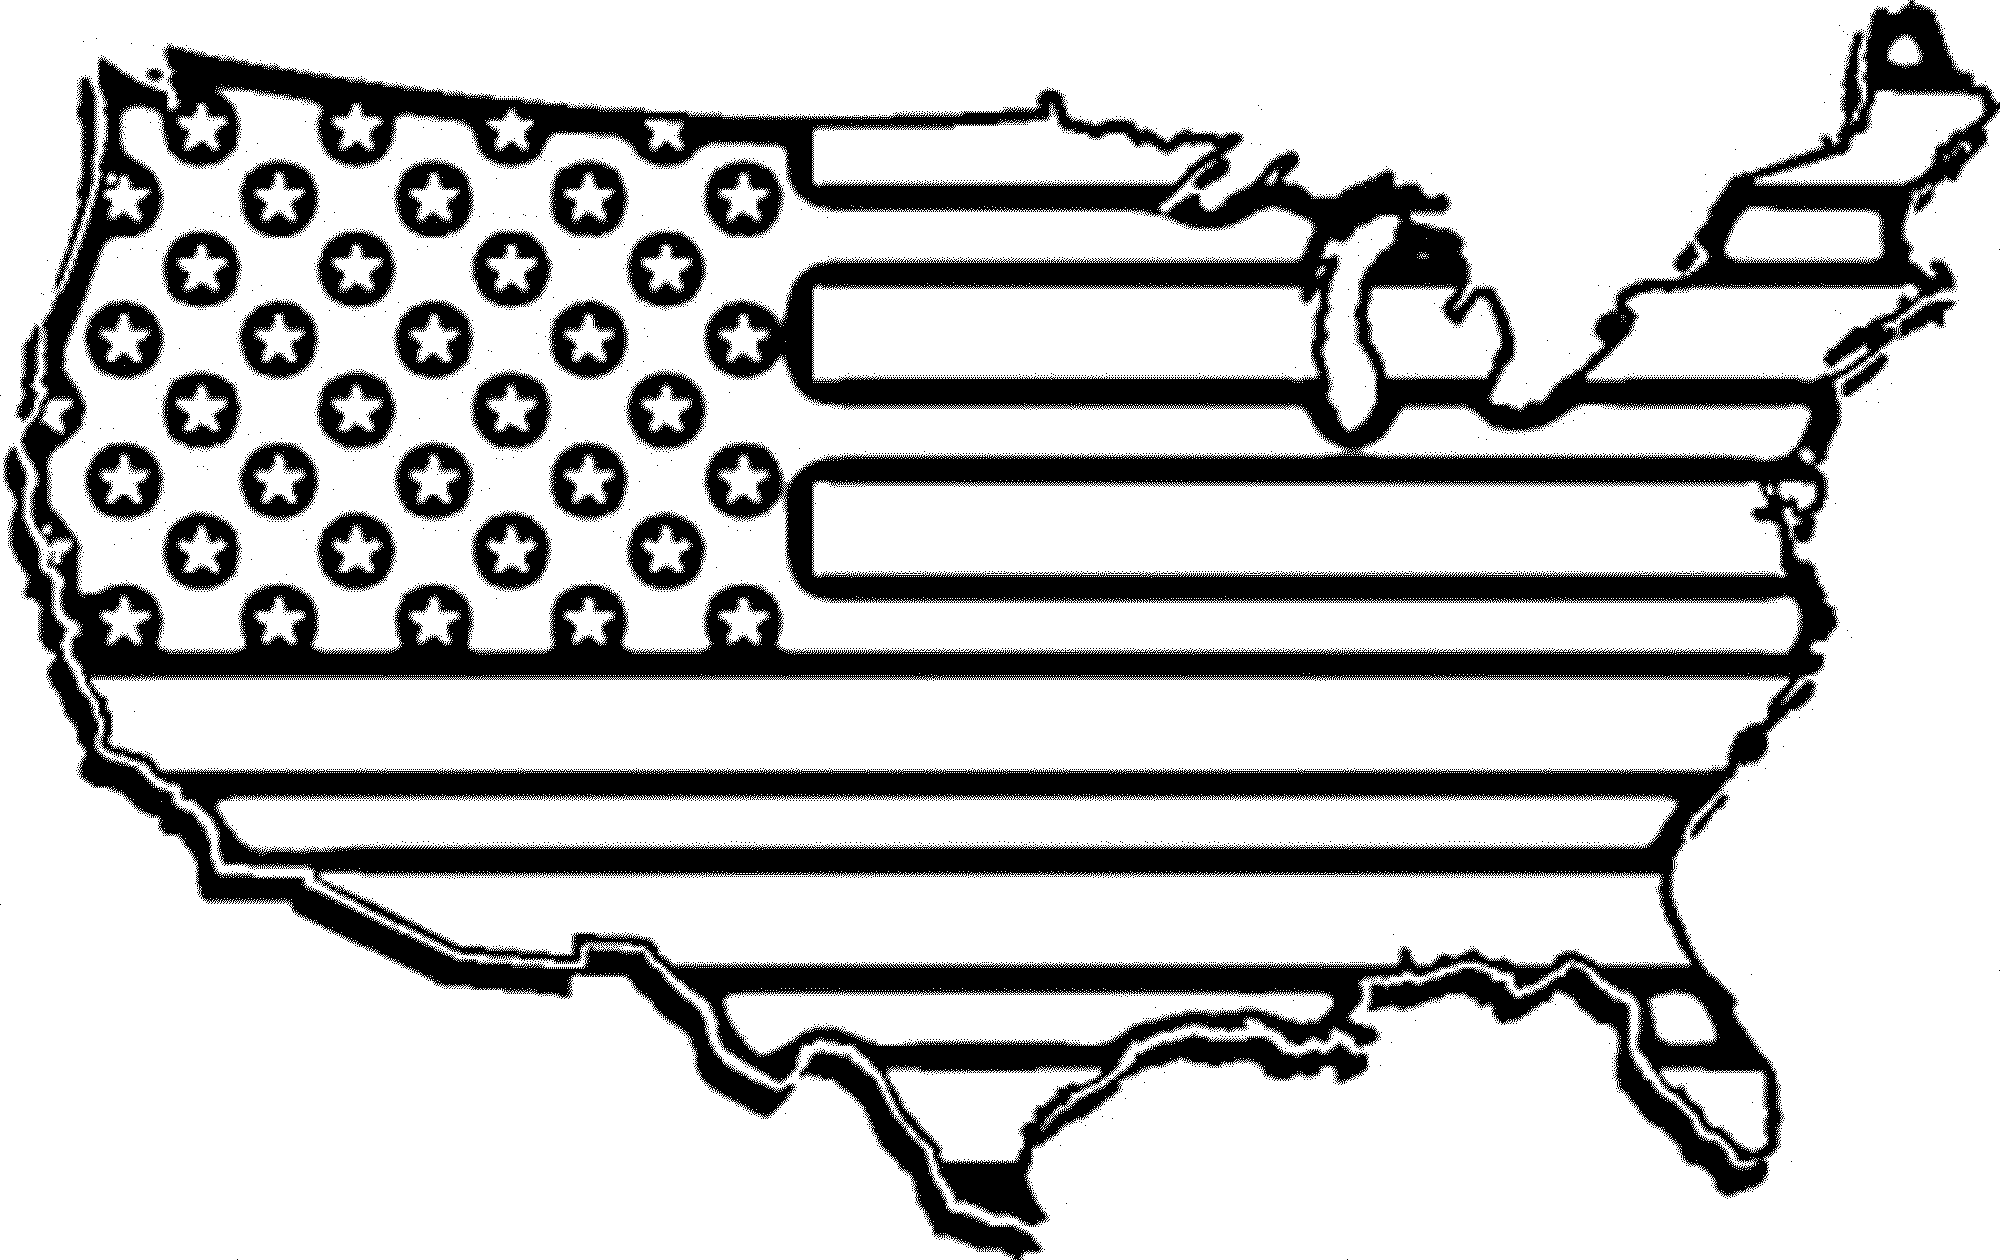 United states of america flag clipart black and white kids clip art library download Free American Flag Clip Art Black And White, Download Free ... clip art library download